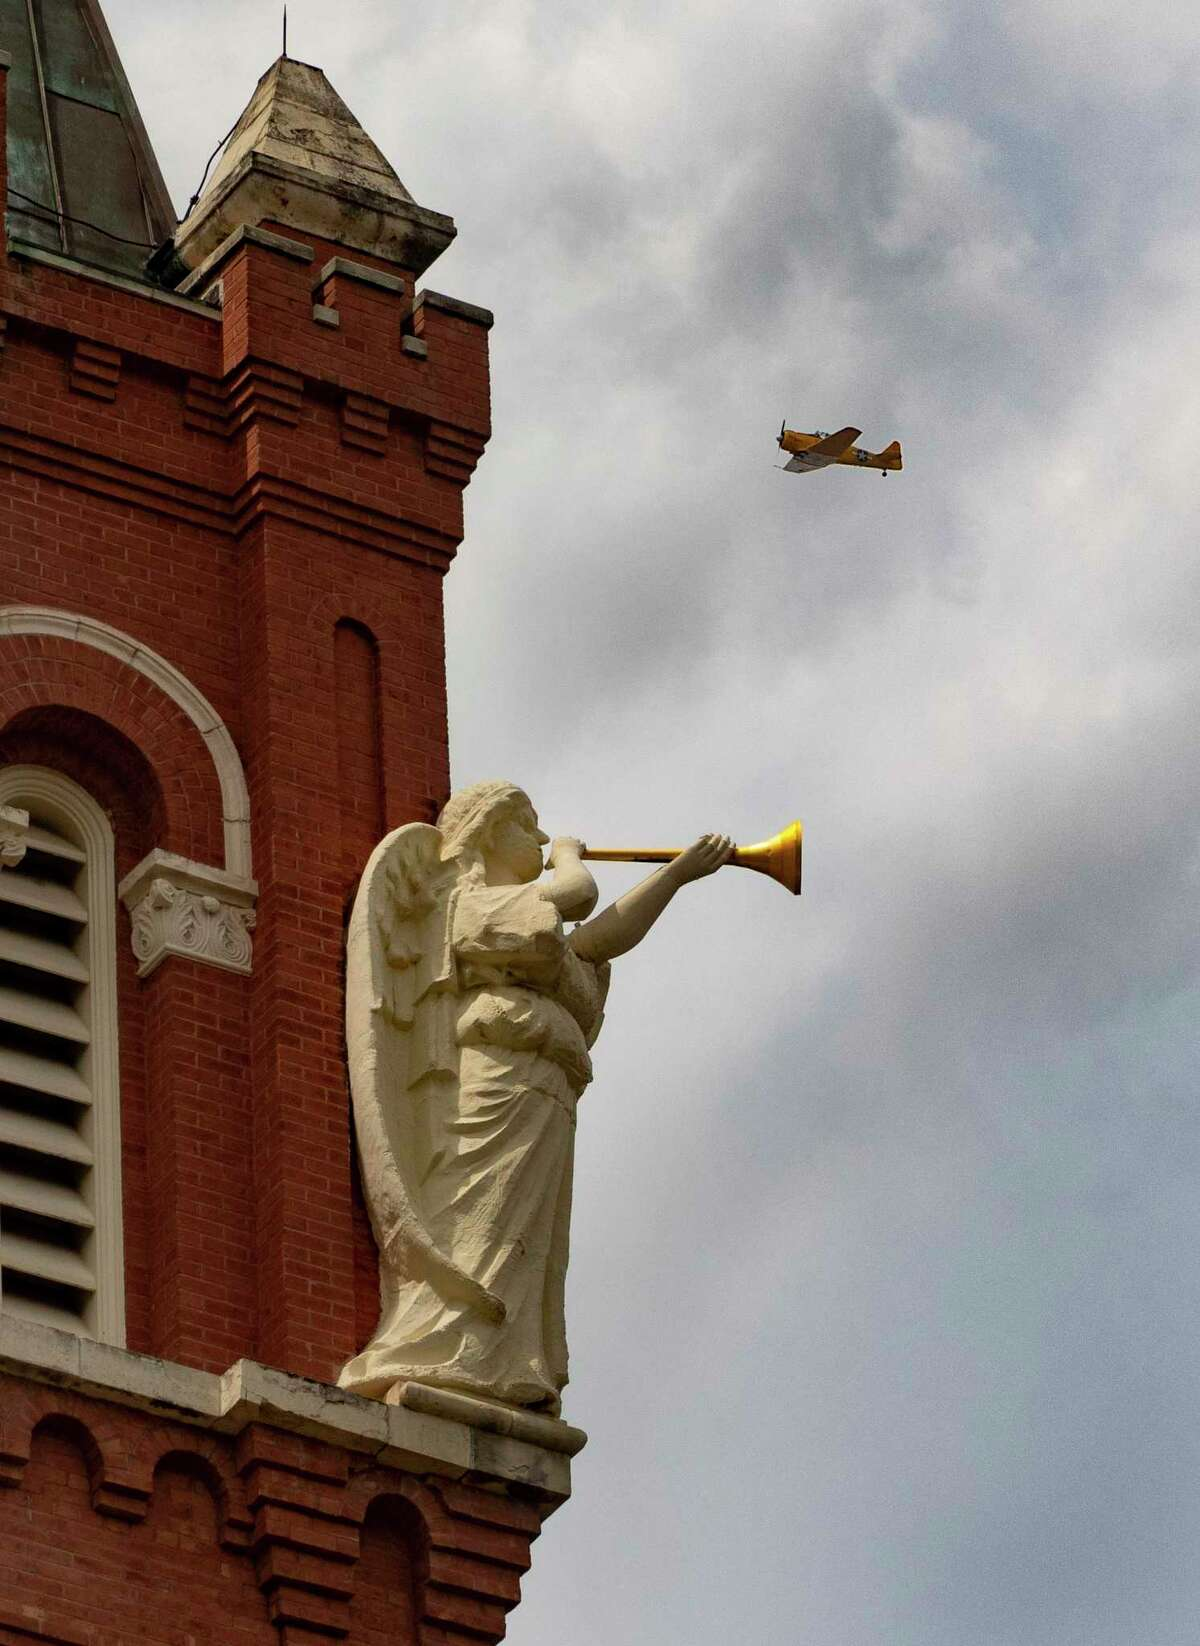 San Antonio Archbishop Gustavo Garcia-Siller flies over The University of Incarnate Word chapel in a vintage 1942 SNJ Texan airplane of the Tex Hill Wing of the Commemorative Air Force on Monday.